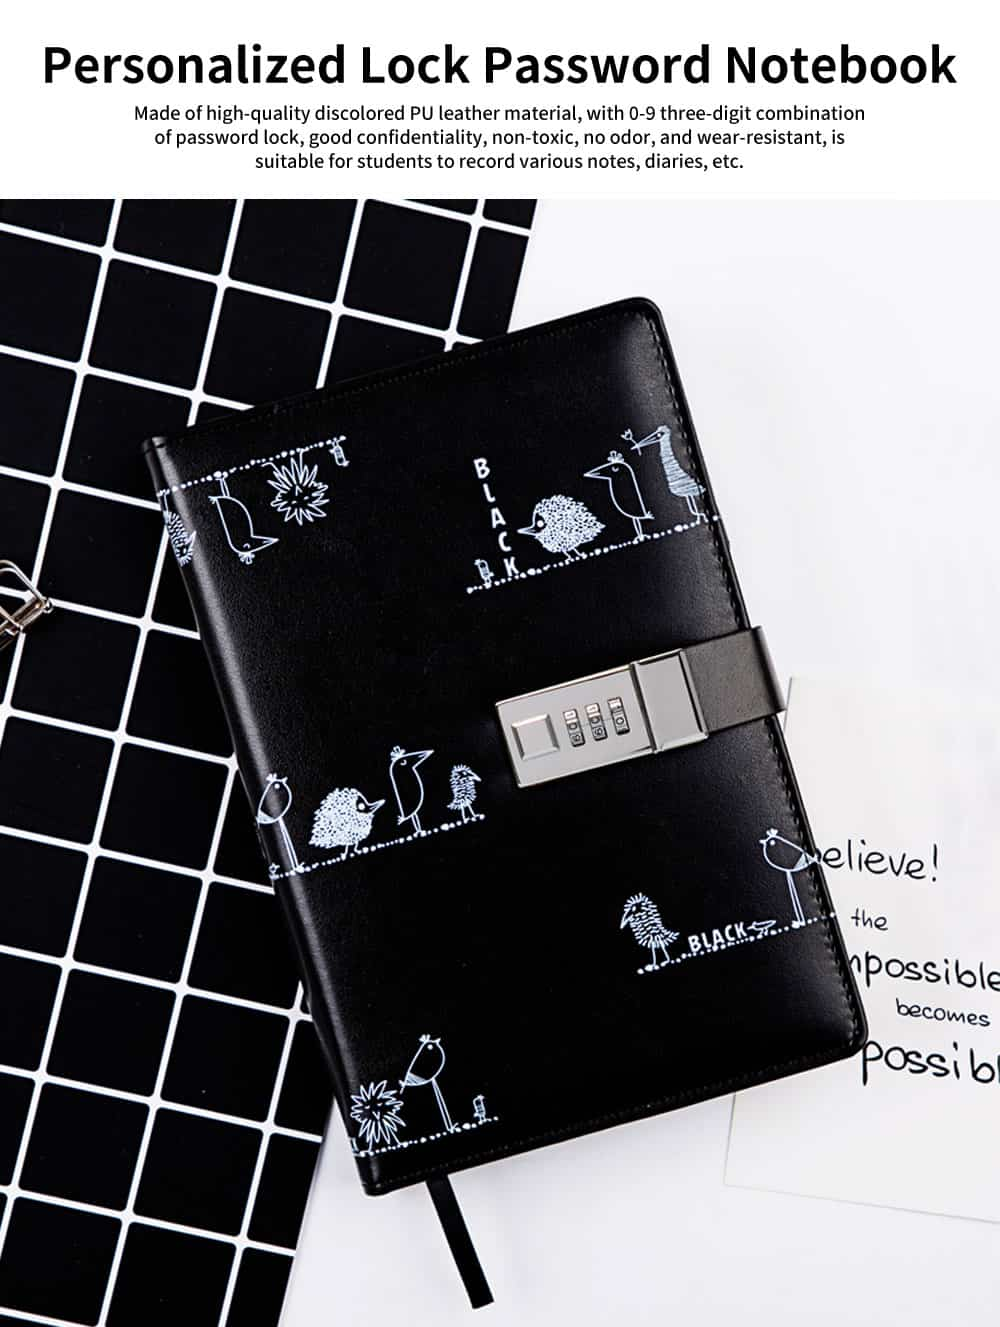 Personalized Lock Adult Password Notebook, Thick Multi-function Notebook, with Hardware Combination Lock 0